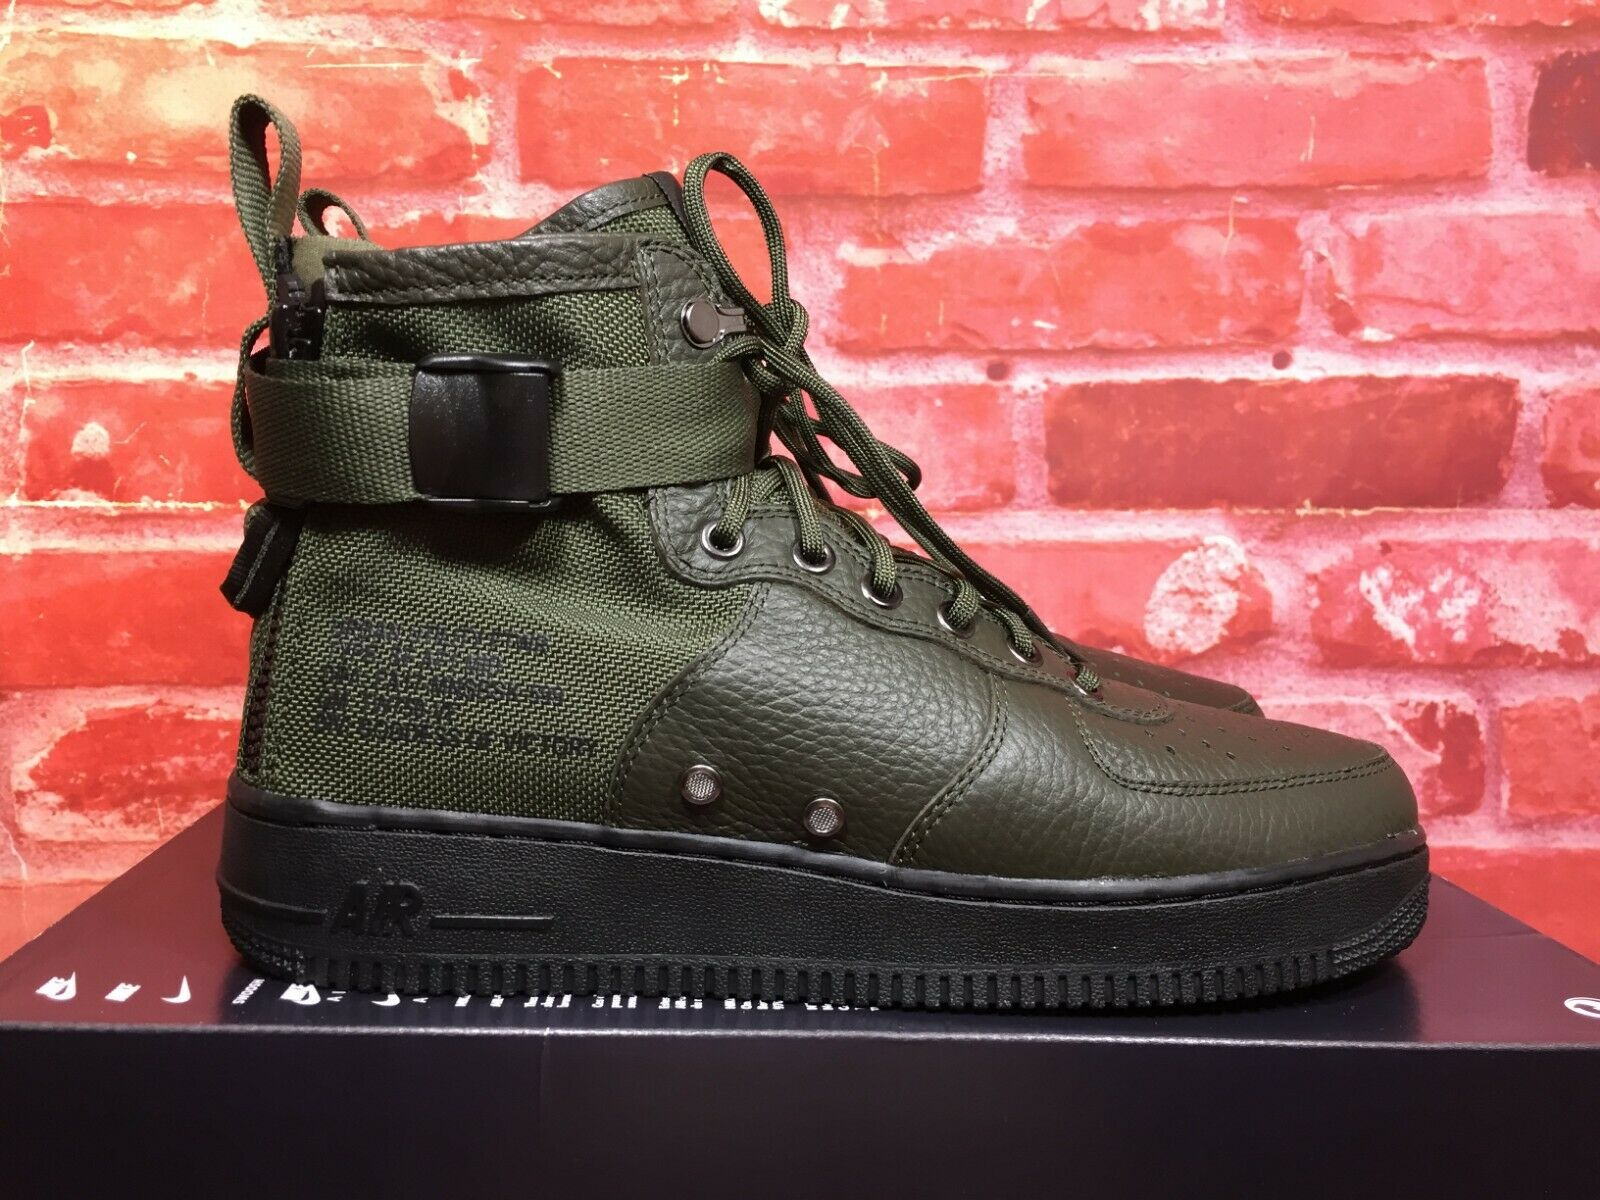 Nike Special Field Air Force 1 Mid Mars Stone 917753 100 Shoes